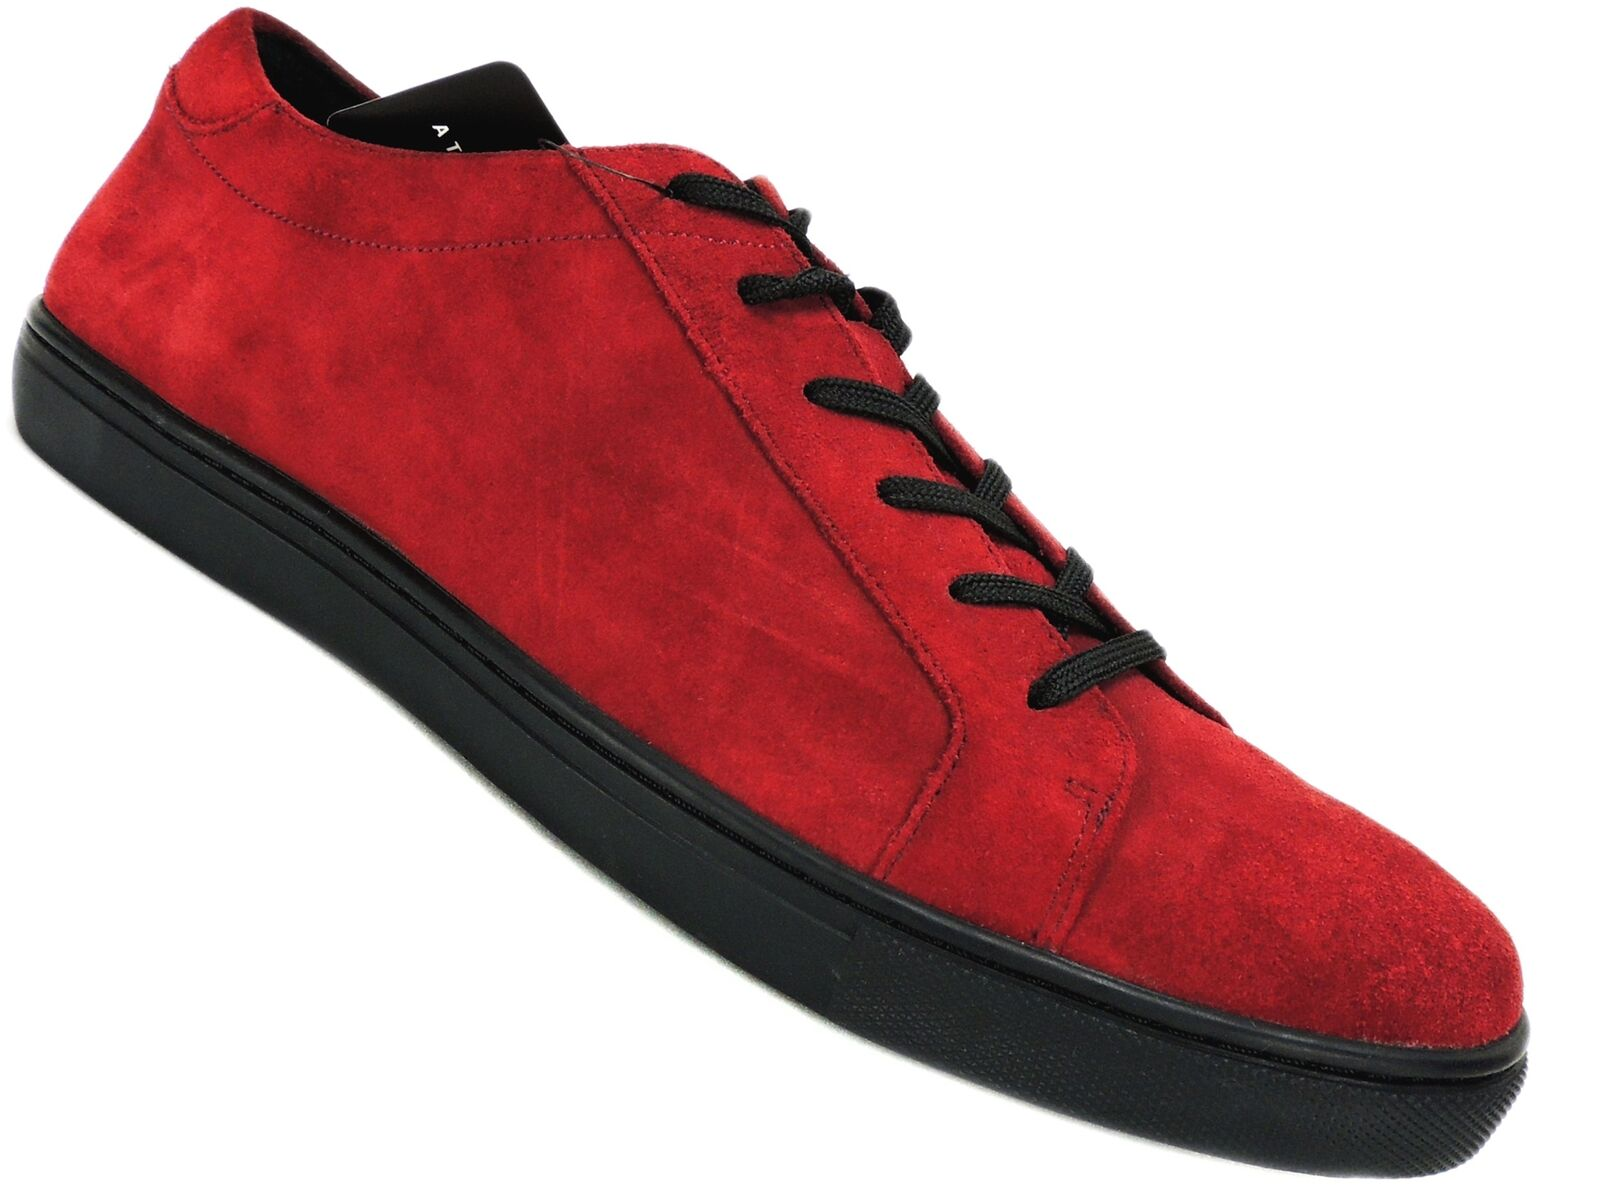 Kenneth Cole New York Men's Kam Low-Top Sneakers Wine Red Suede Size 7 M